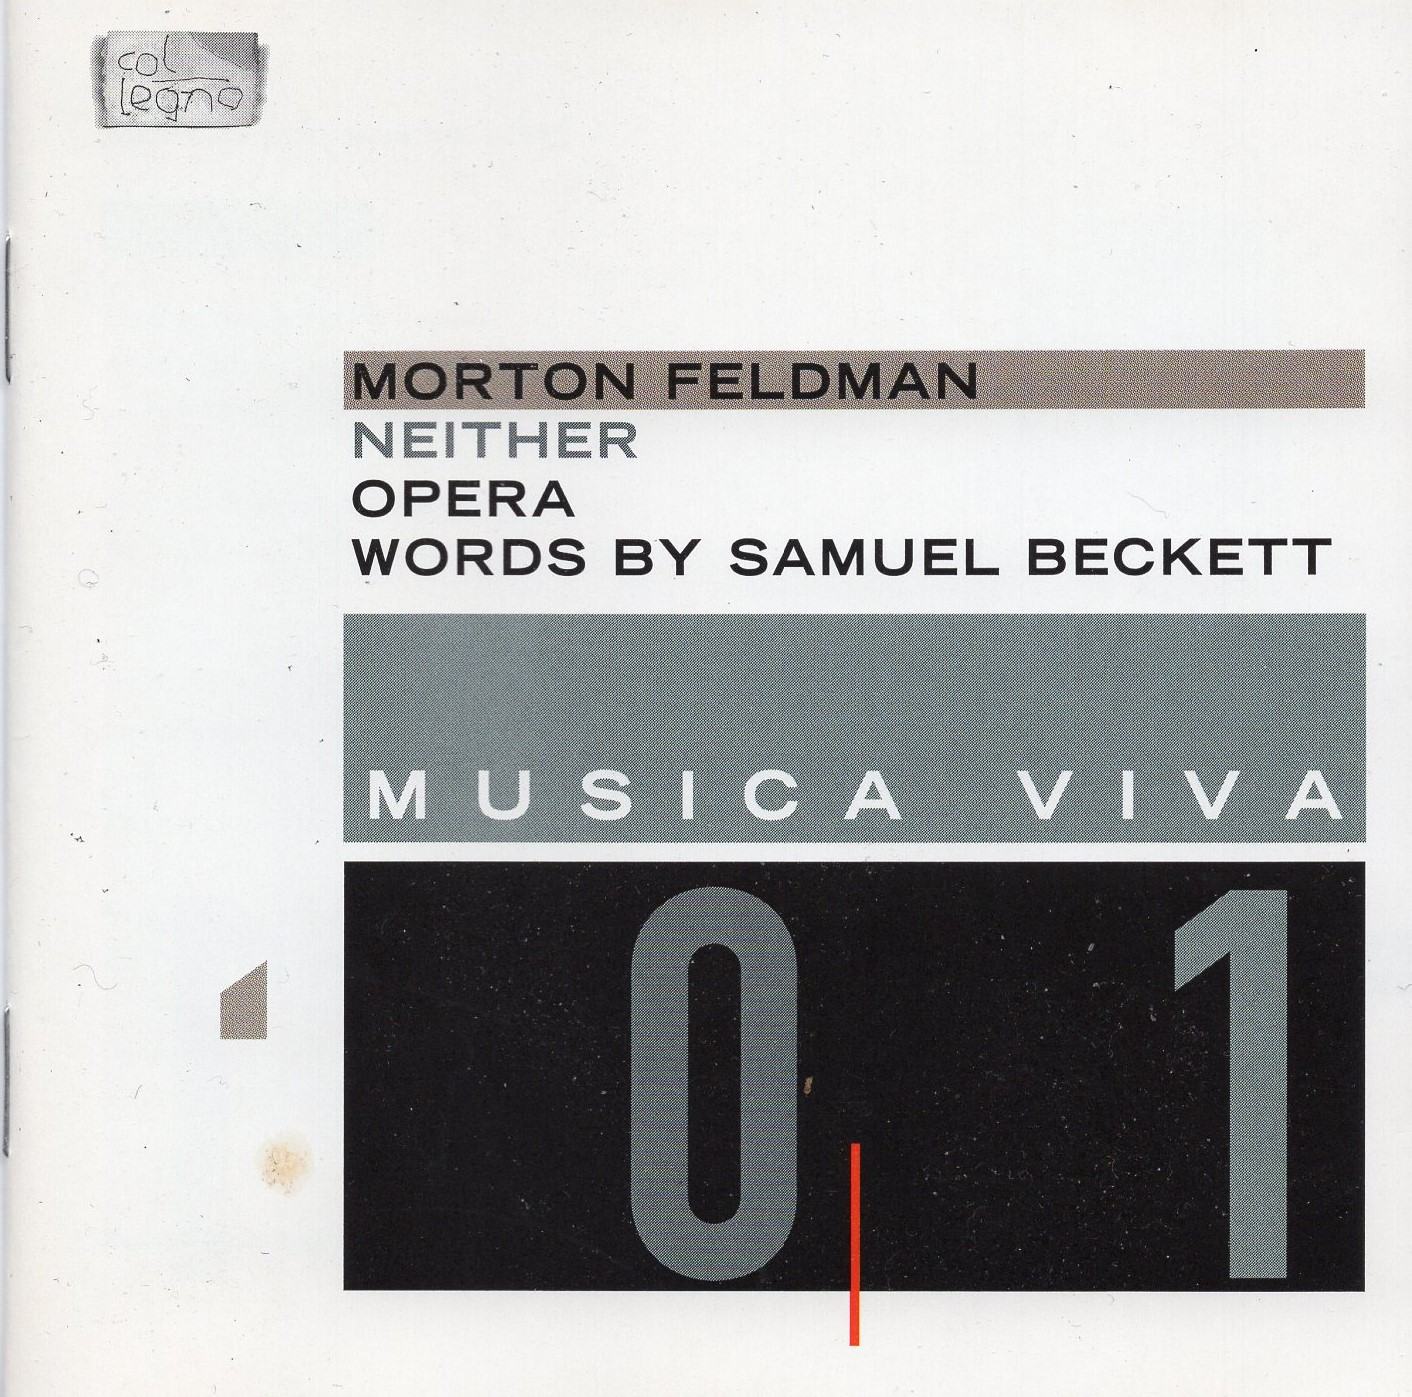 """Musica Viva 01: Words By Samuel Beckett - Neither (Opera)"" Morton Feldman"